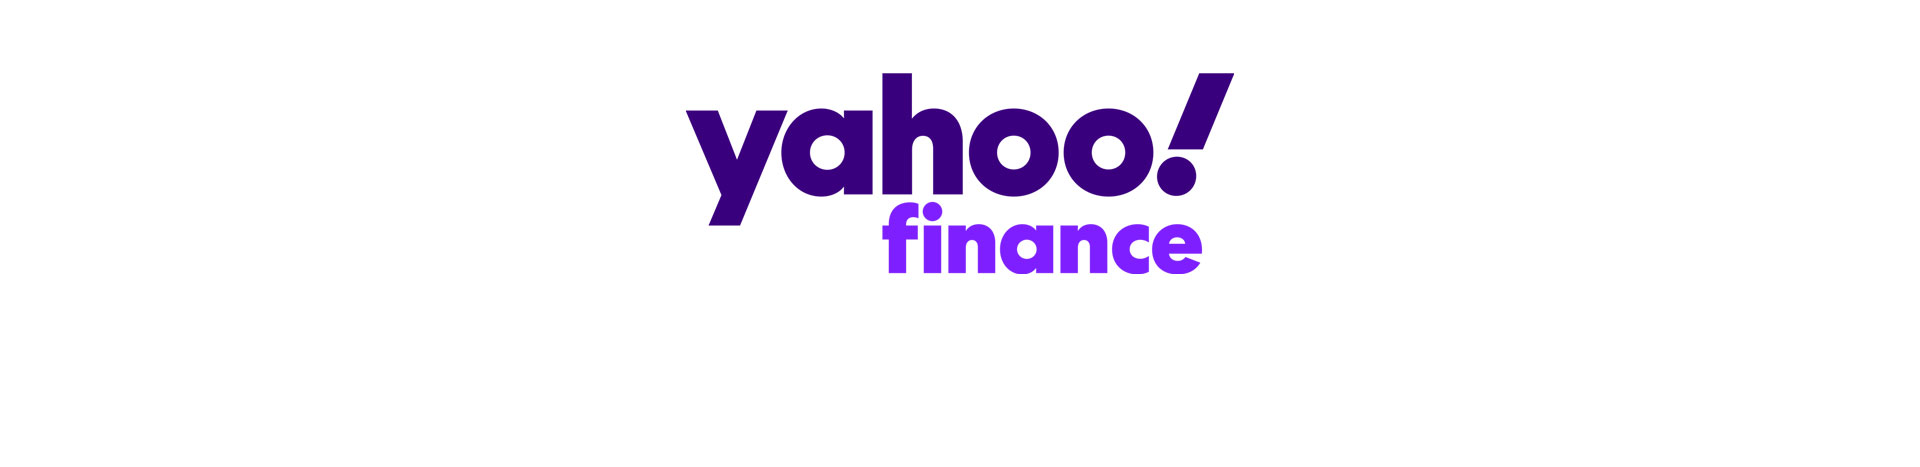 Yahoo! Finance: 20,000 to register for OurCrowd Global Investor Summit in Jerusalem